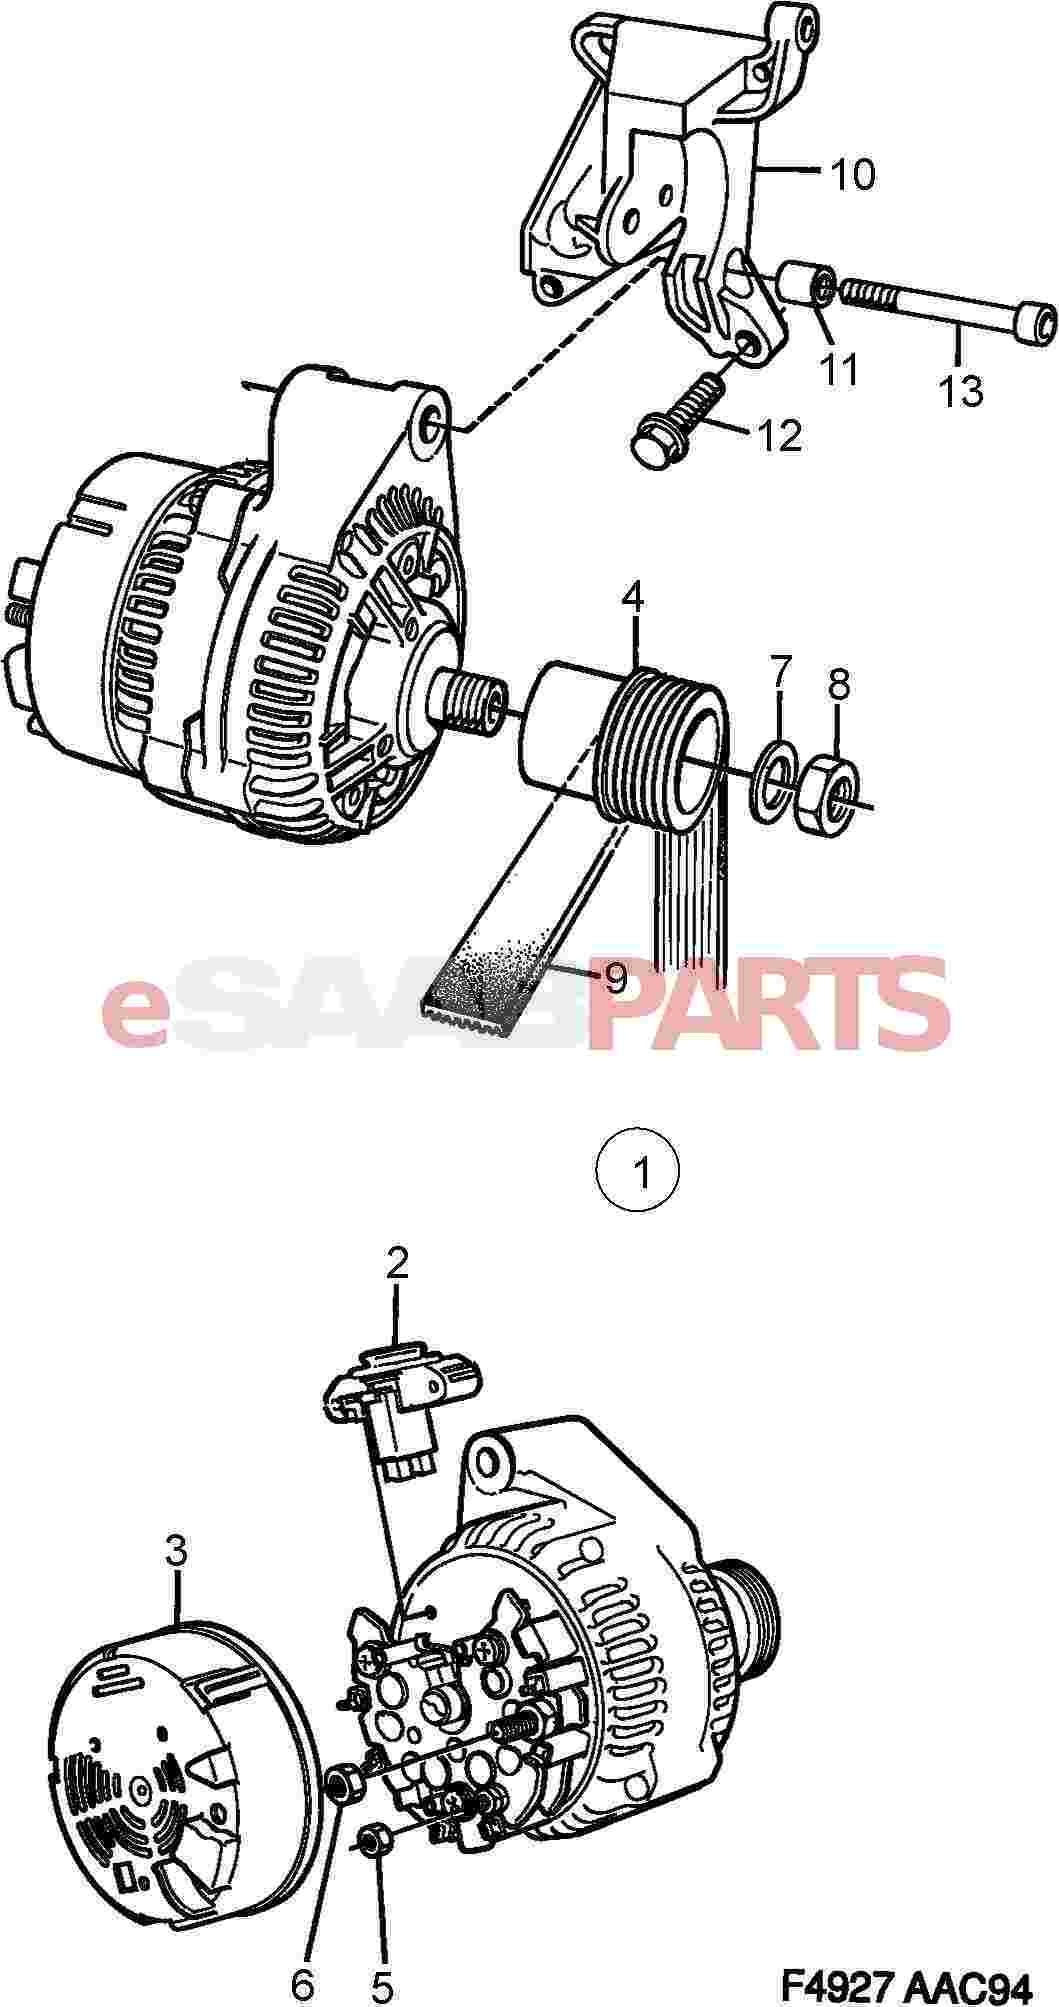 Index cfm besides Index cfm in addition Aero furthermore Ford 2 0 Timing Belt besides Index cfm. on saab 9 3 alternator part diagram